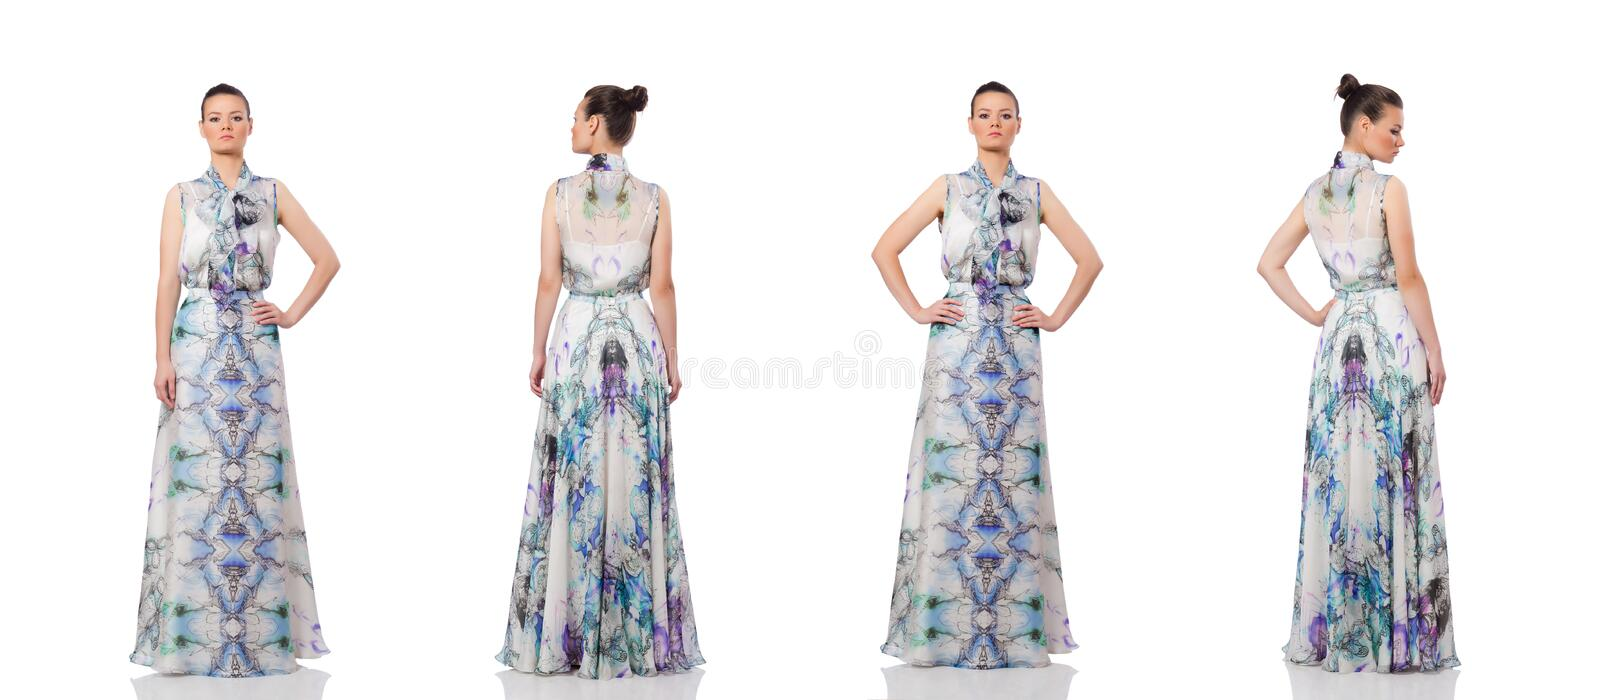 The beautiful girl in elegant long dress isolated on white royalty free stock image